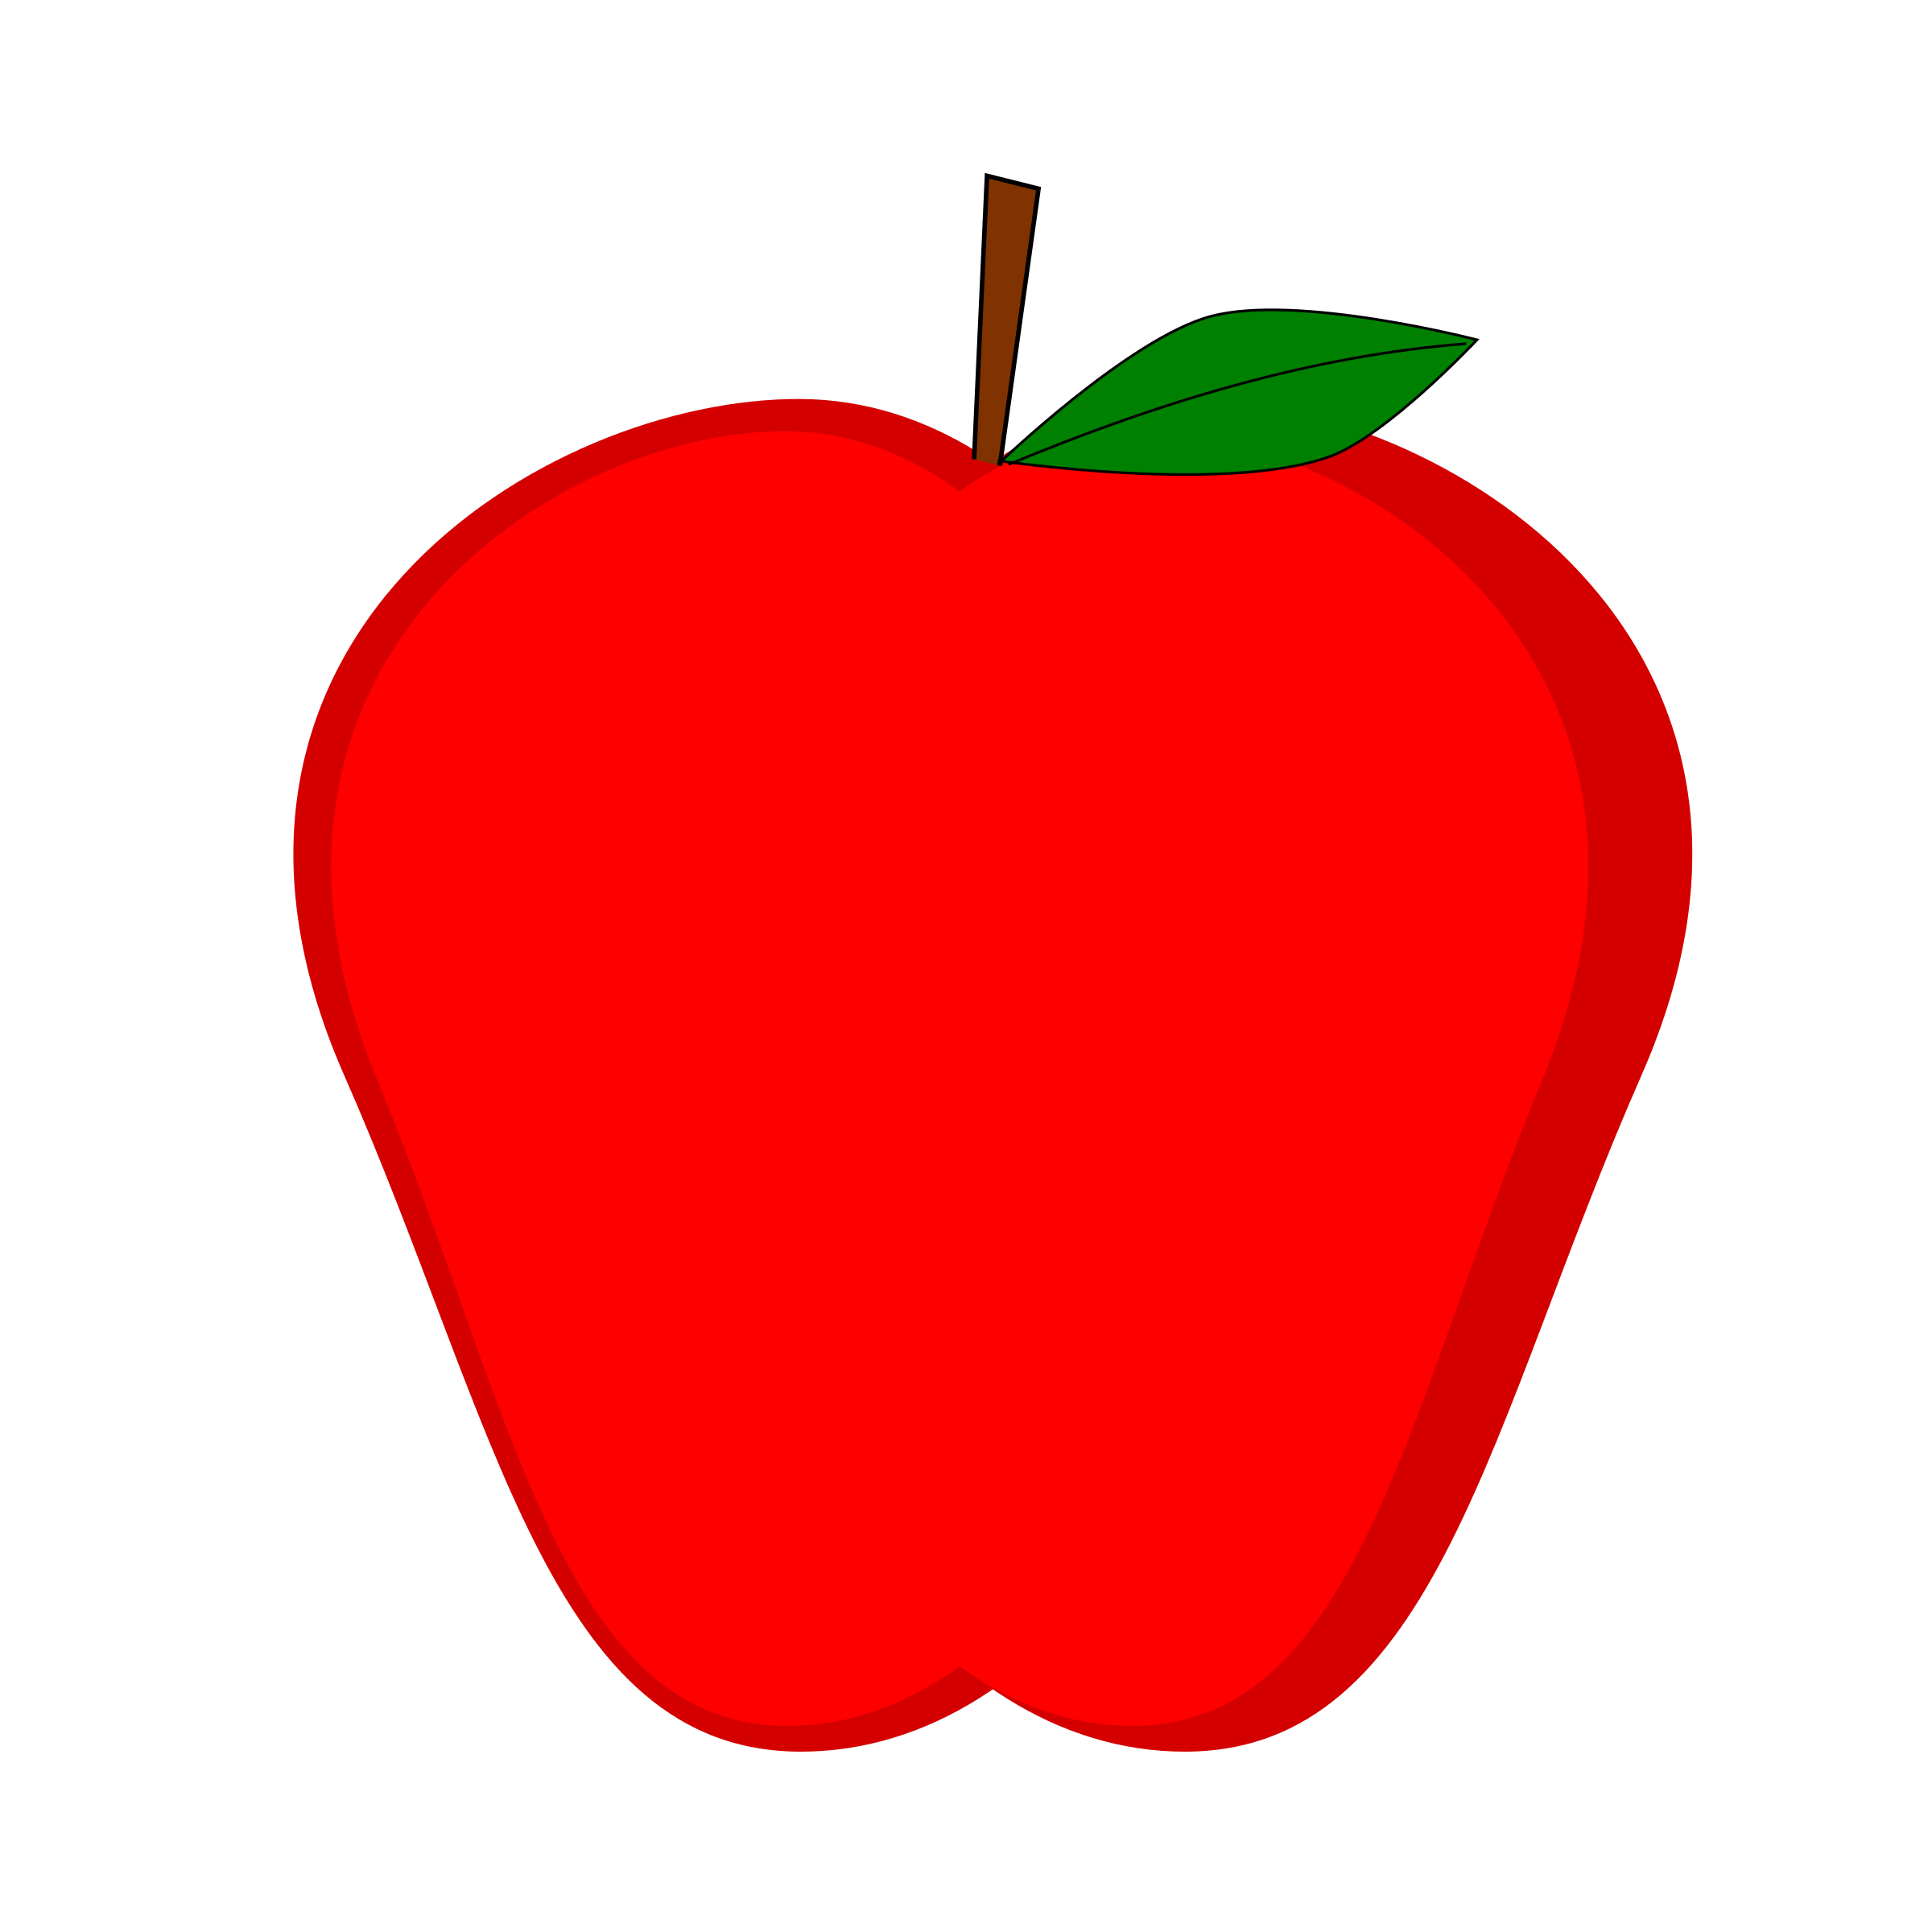 Apple by Indhu